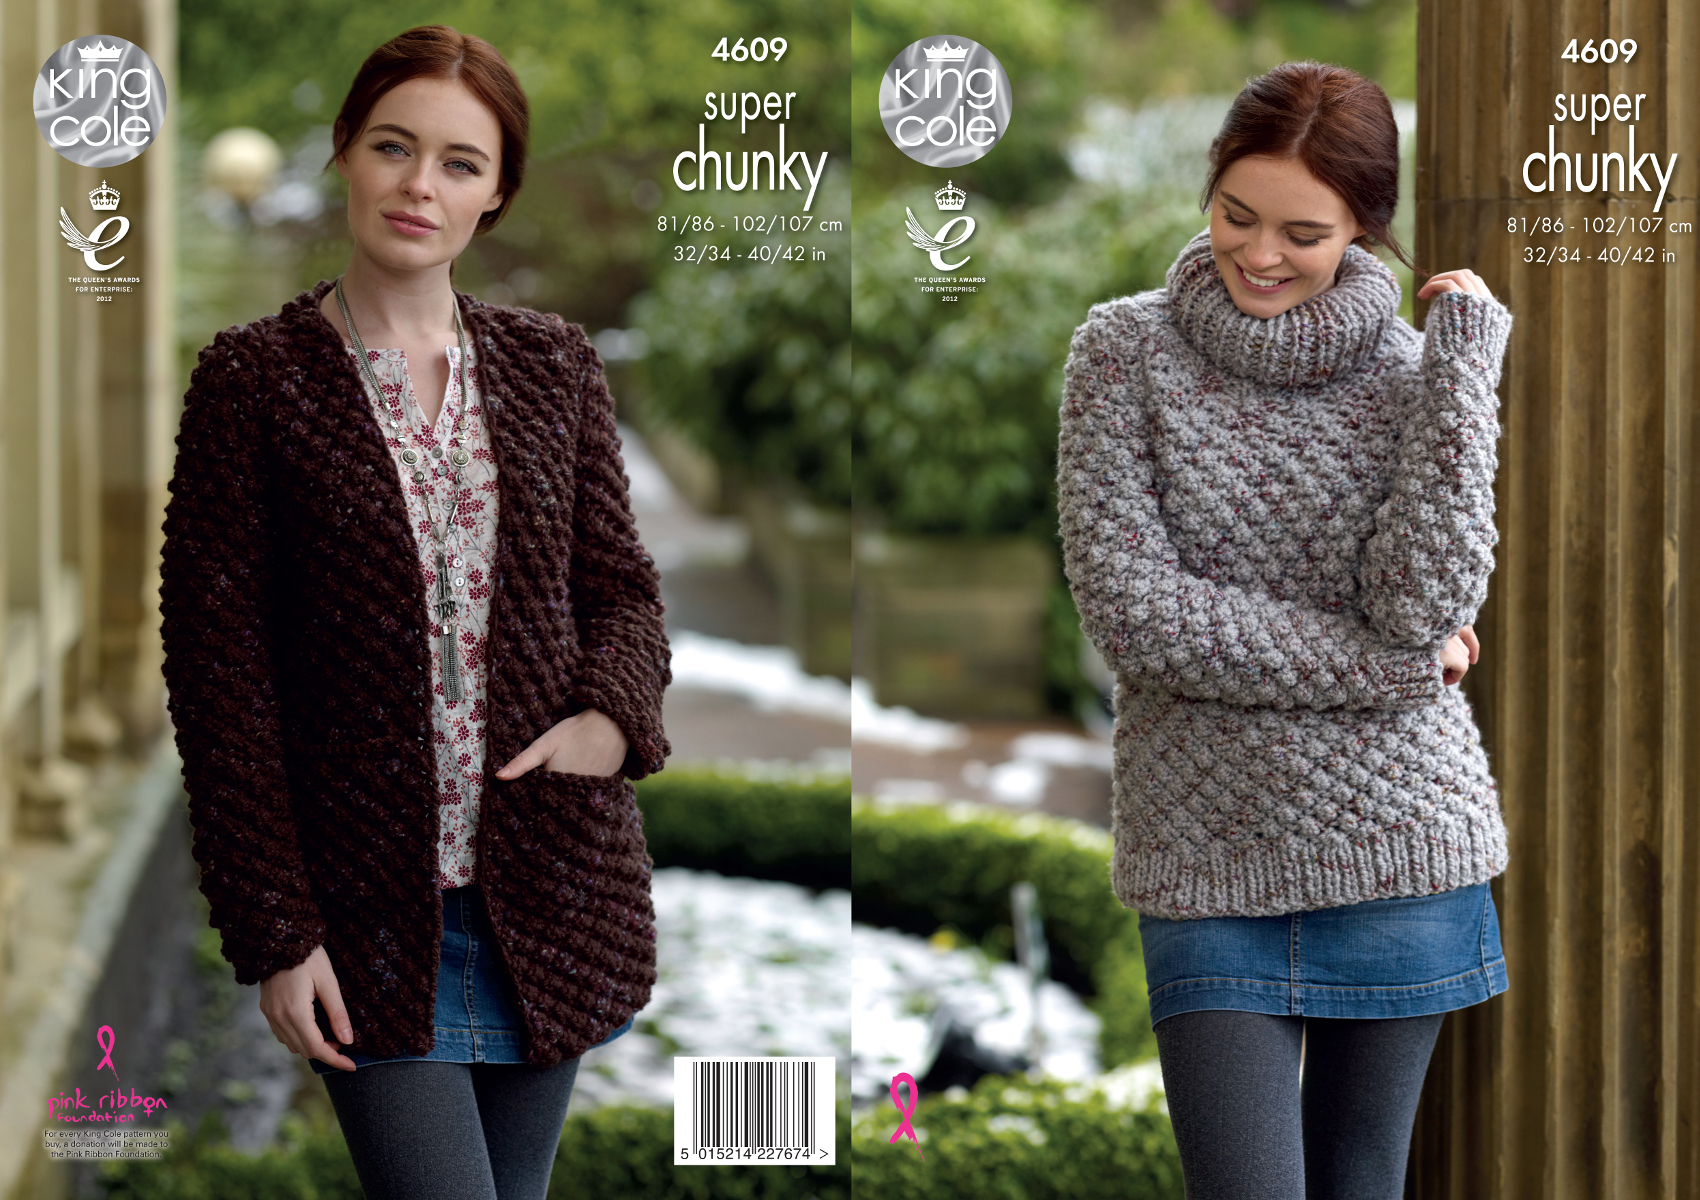 Super Chunky Jumper Knitting Pattern : King Cole Ladies Super Chunky Knitting Pattern Polo Neck Sweater & Cardgi...